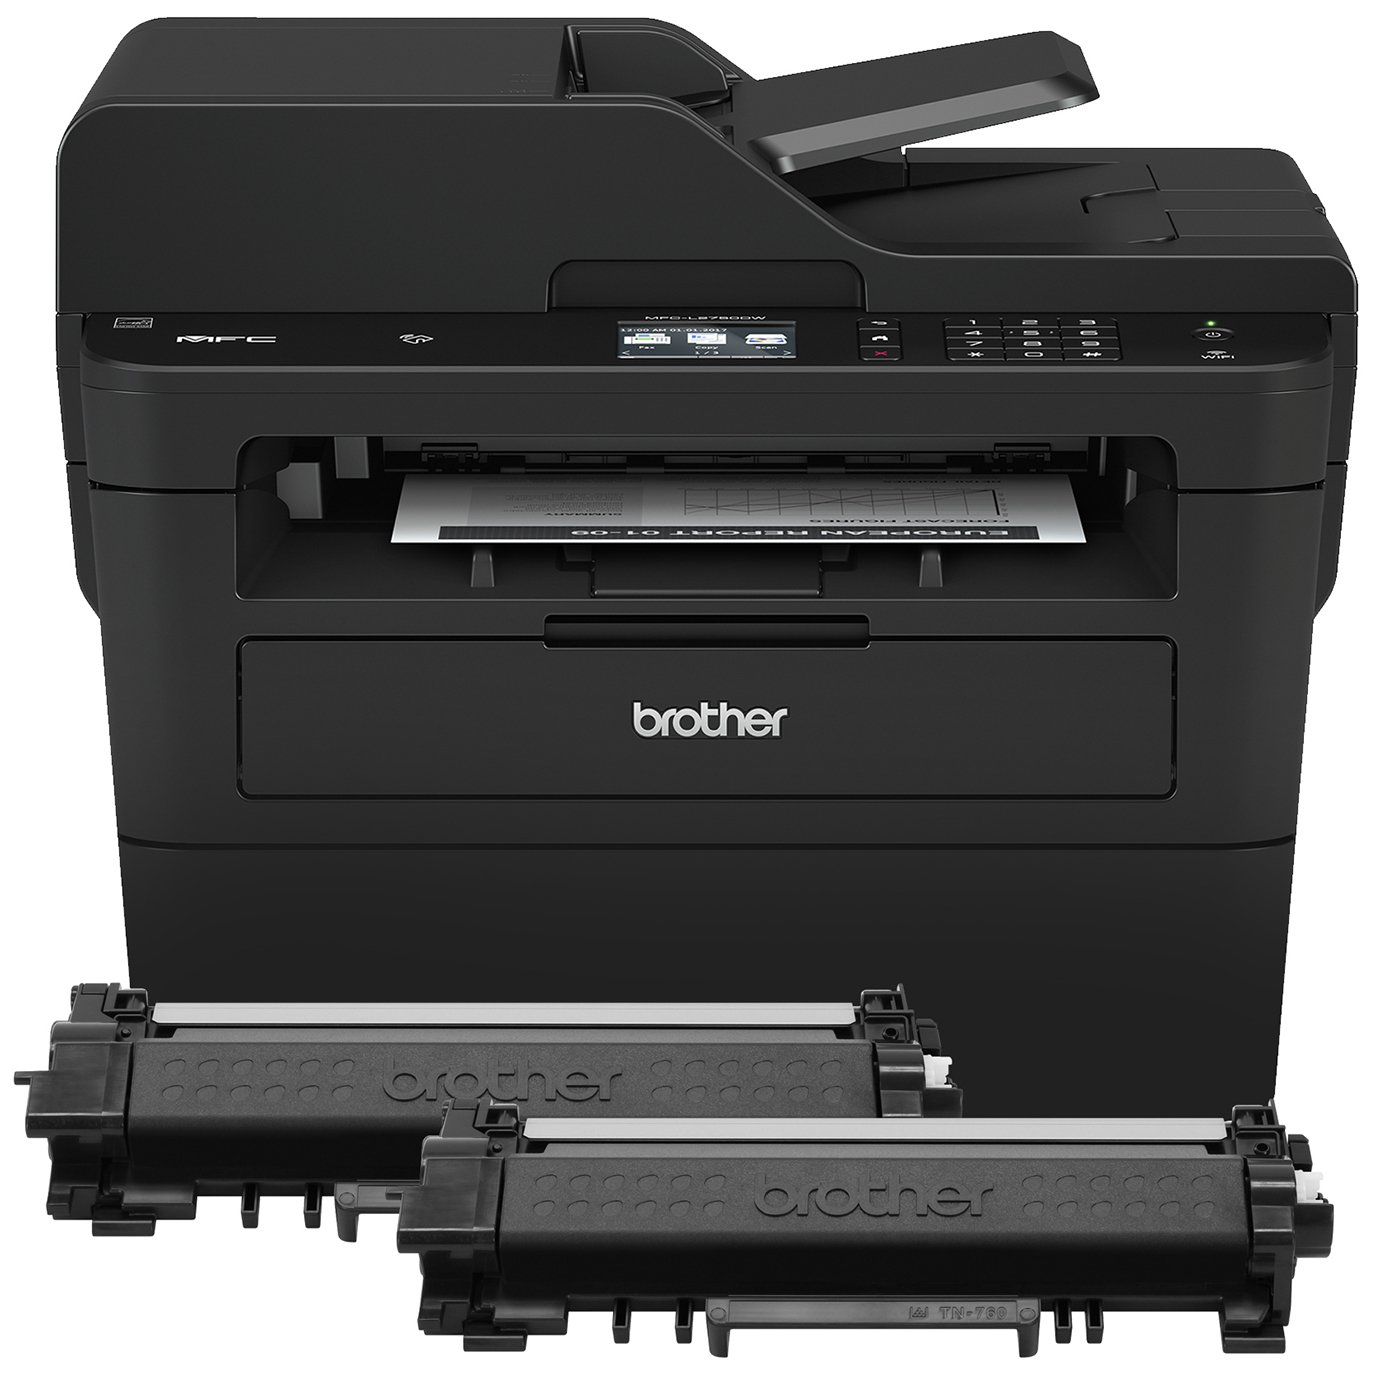 Brother Compact All-in-One Printer Black Friday Deal 2020